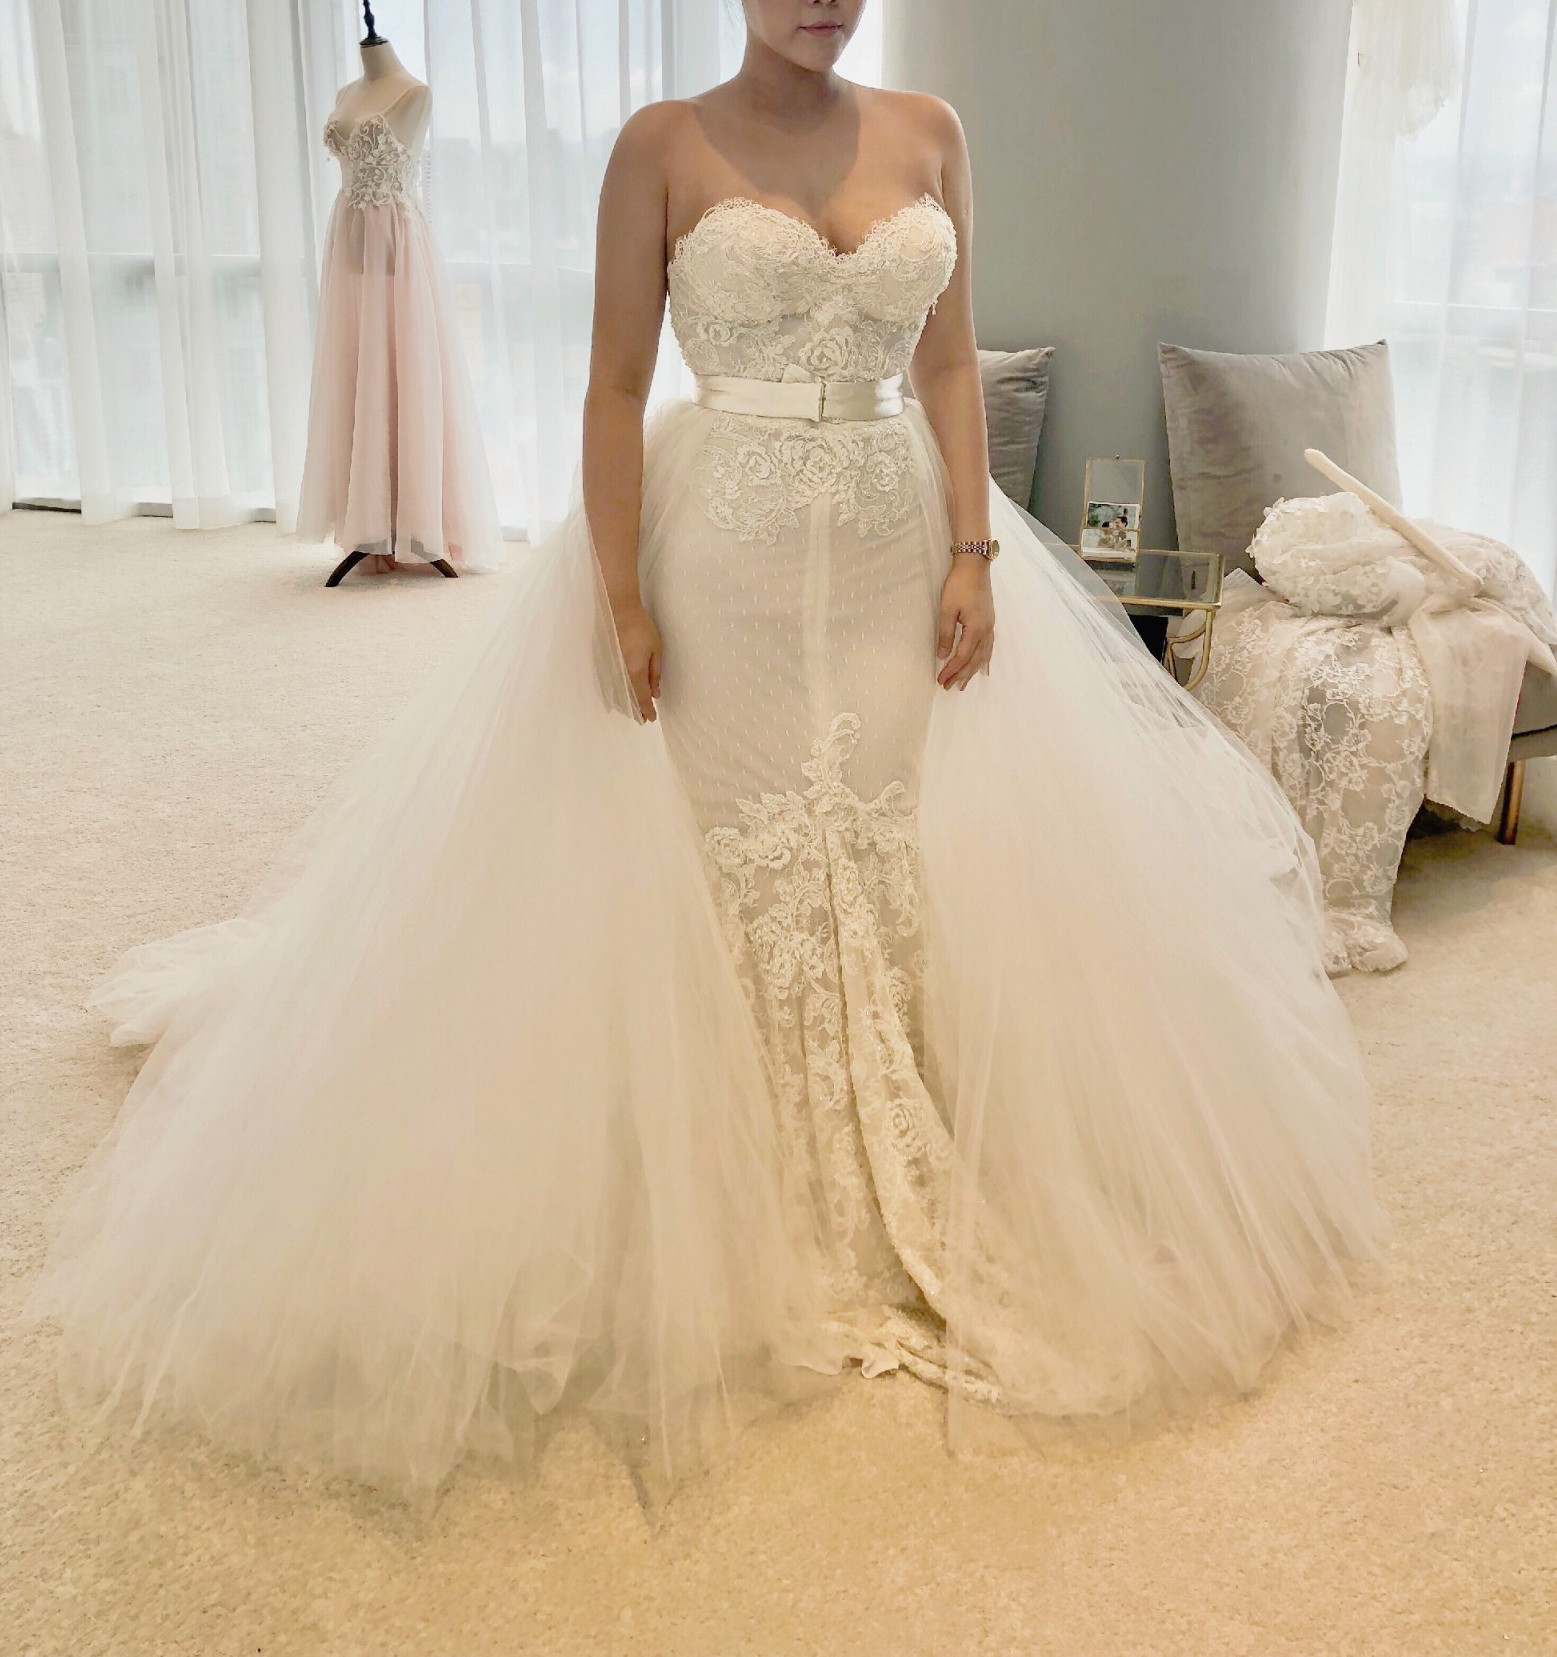 Inbal Dror Wedding Gowns For Sale: Inbal Dror 2018-2019 Pure Collection 18-08 Gown In White